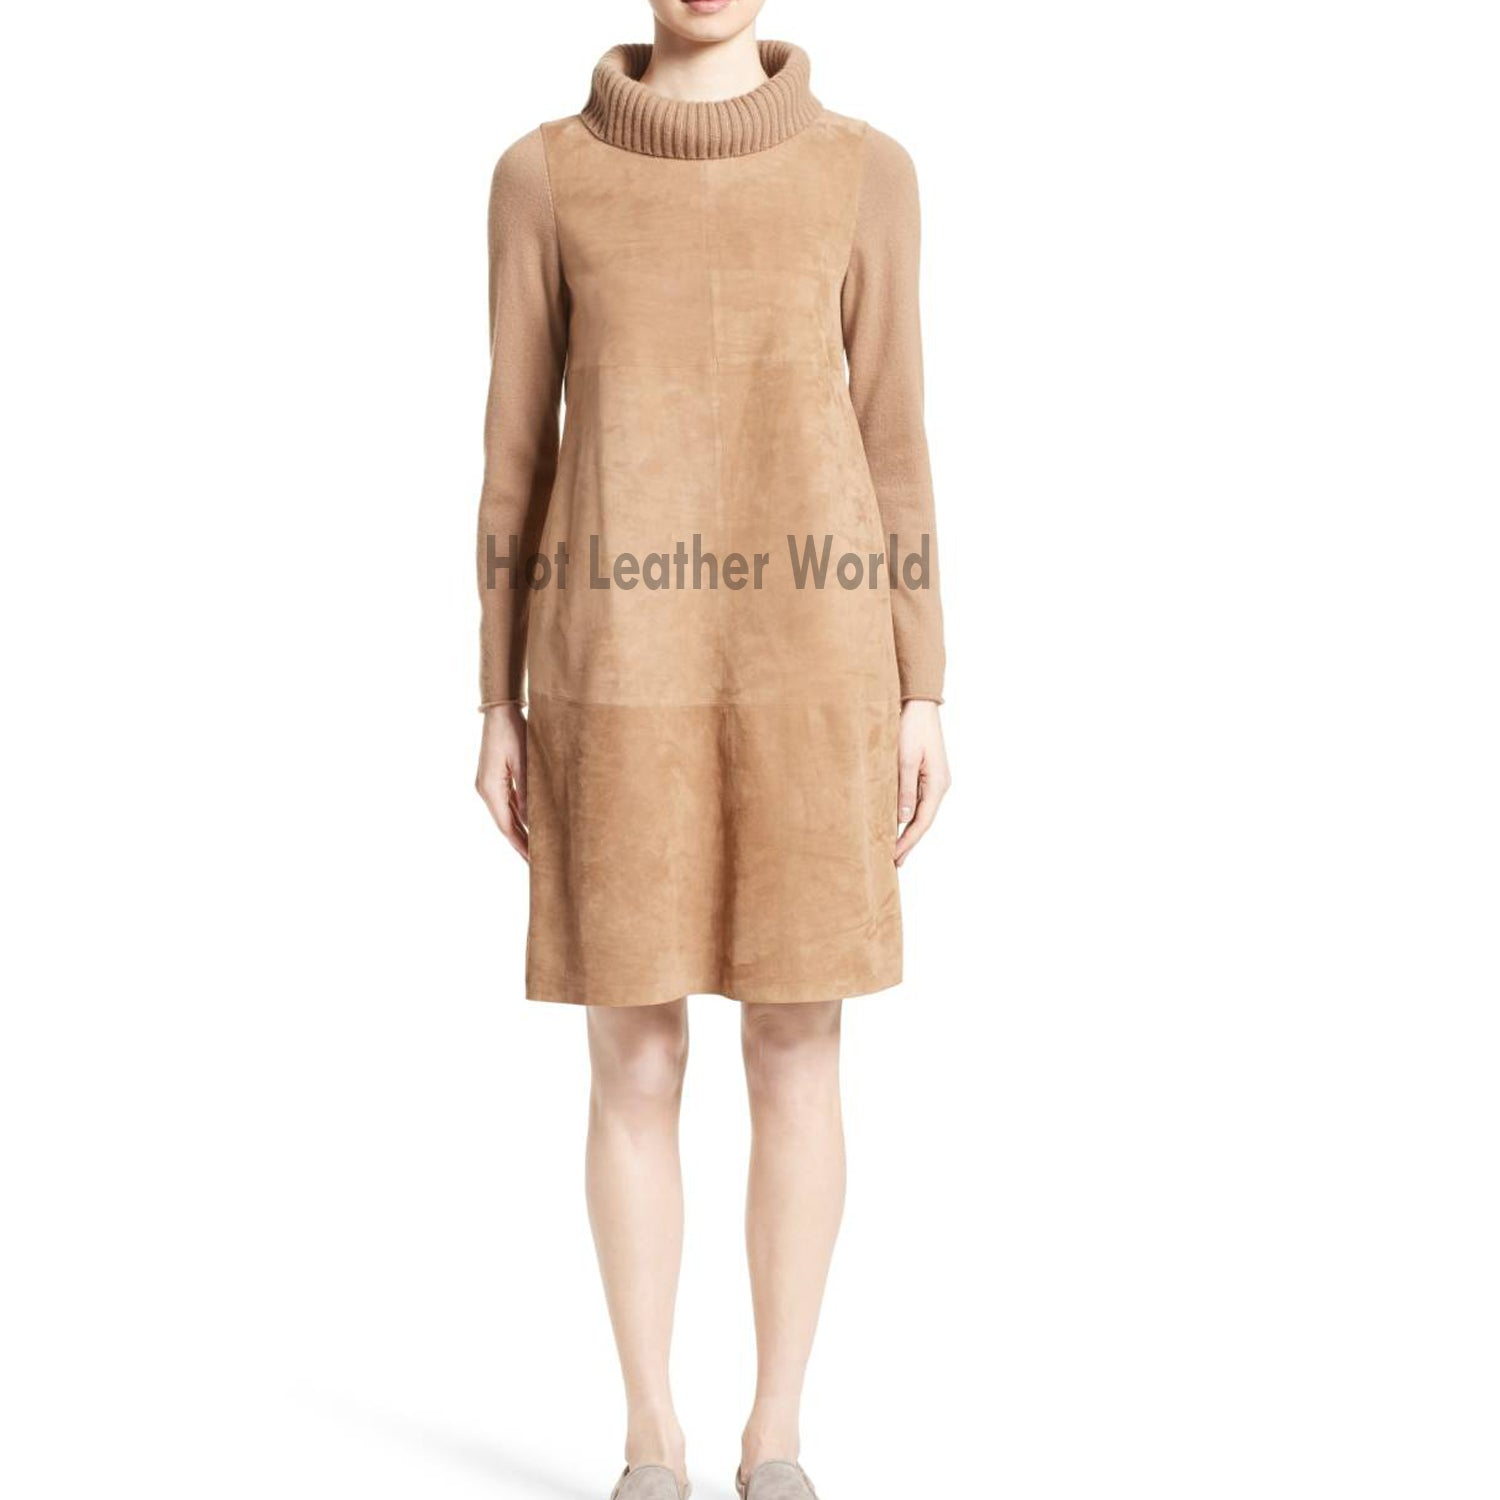 TURTLENECK SUEDE LEATHER DRESS -  HOTLEATHERWORLD